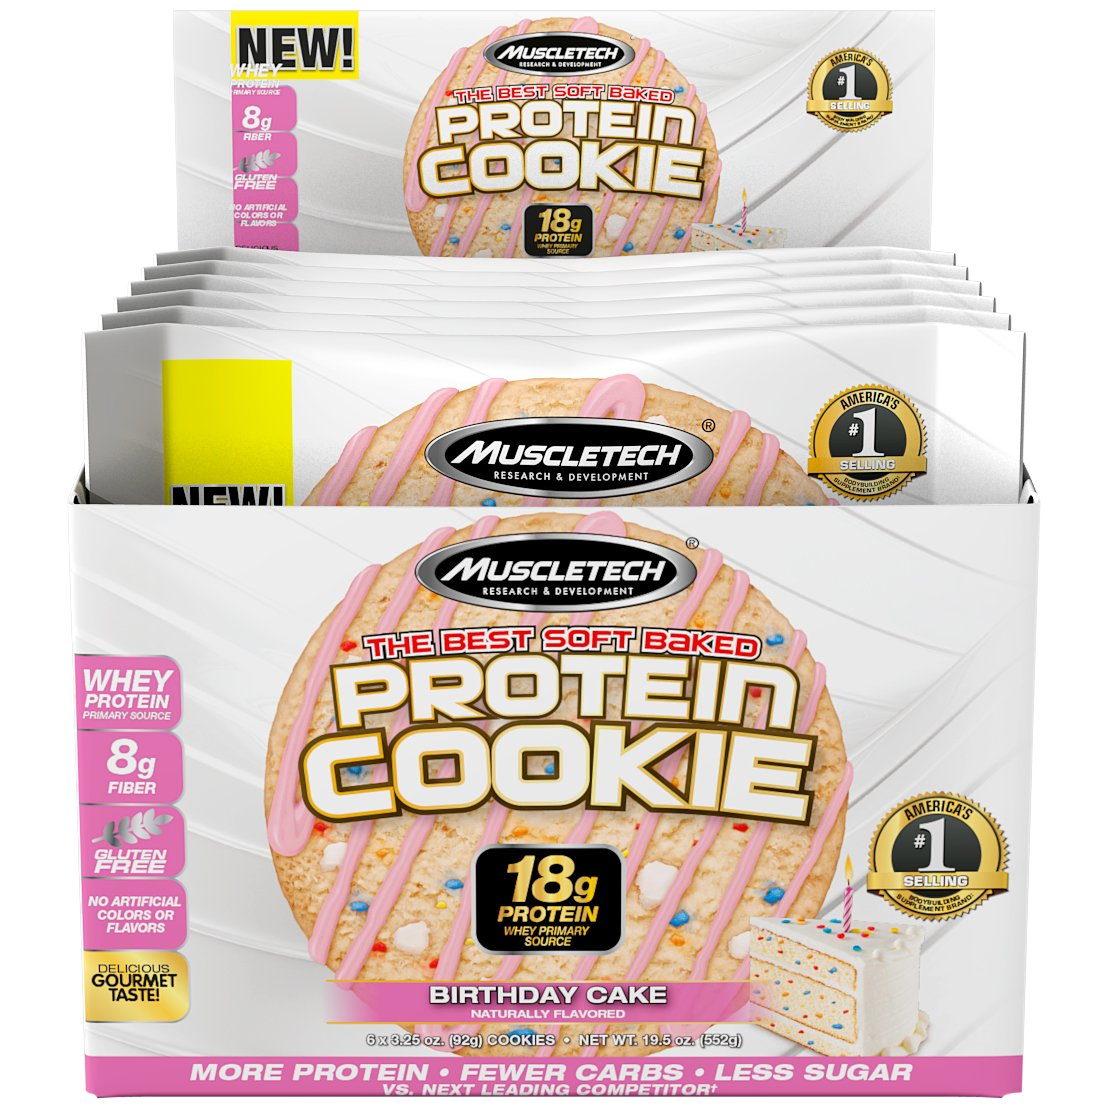 MuscleTech Soft Baked Whey Protein Cookie, Birthday Cake, Gluten-Free, 3.25-ounce (Pack of 6-92g)